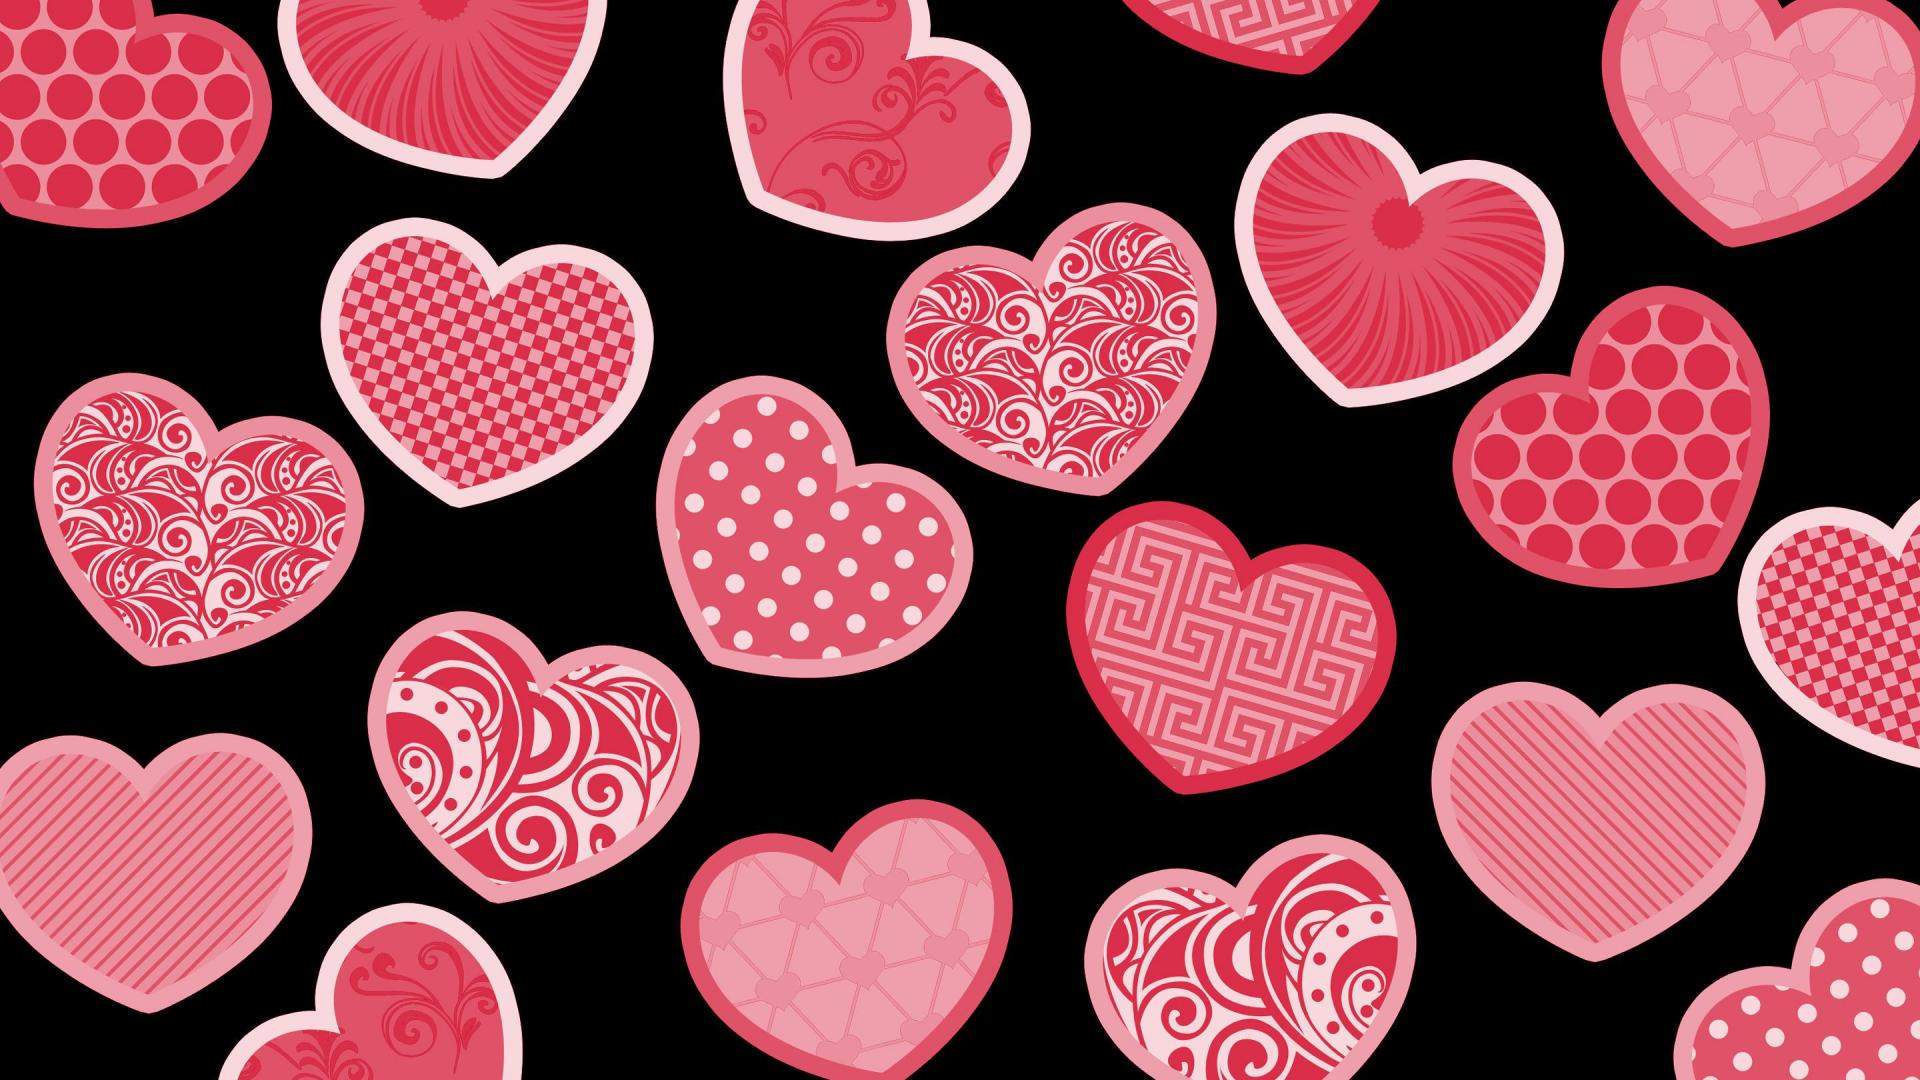 200 Pictures of pink and black hearts